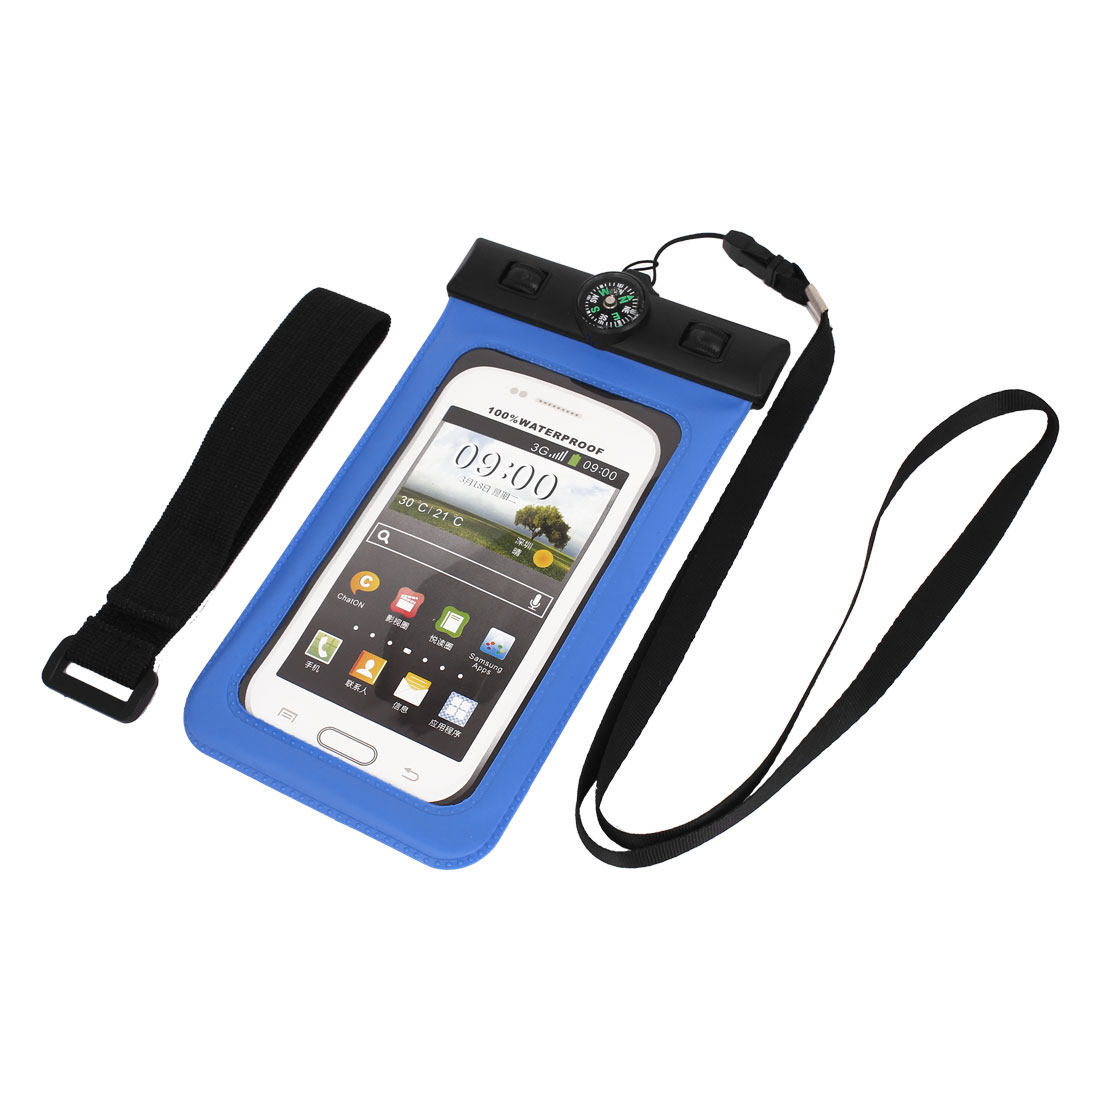 "Waterproof Bag Holder Pouch Deep Blue for 4.5"" Mobile Phone w Neck Strap Compass"